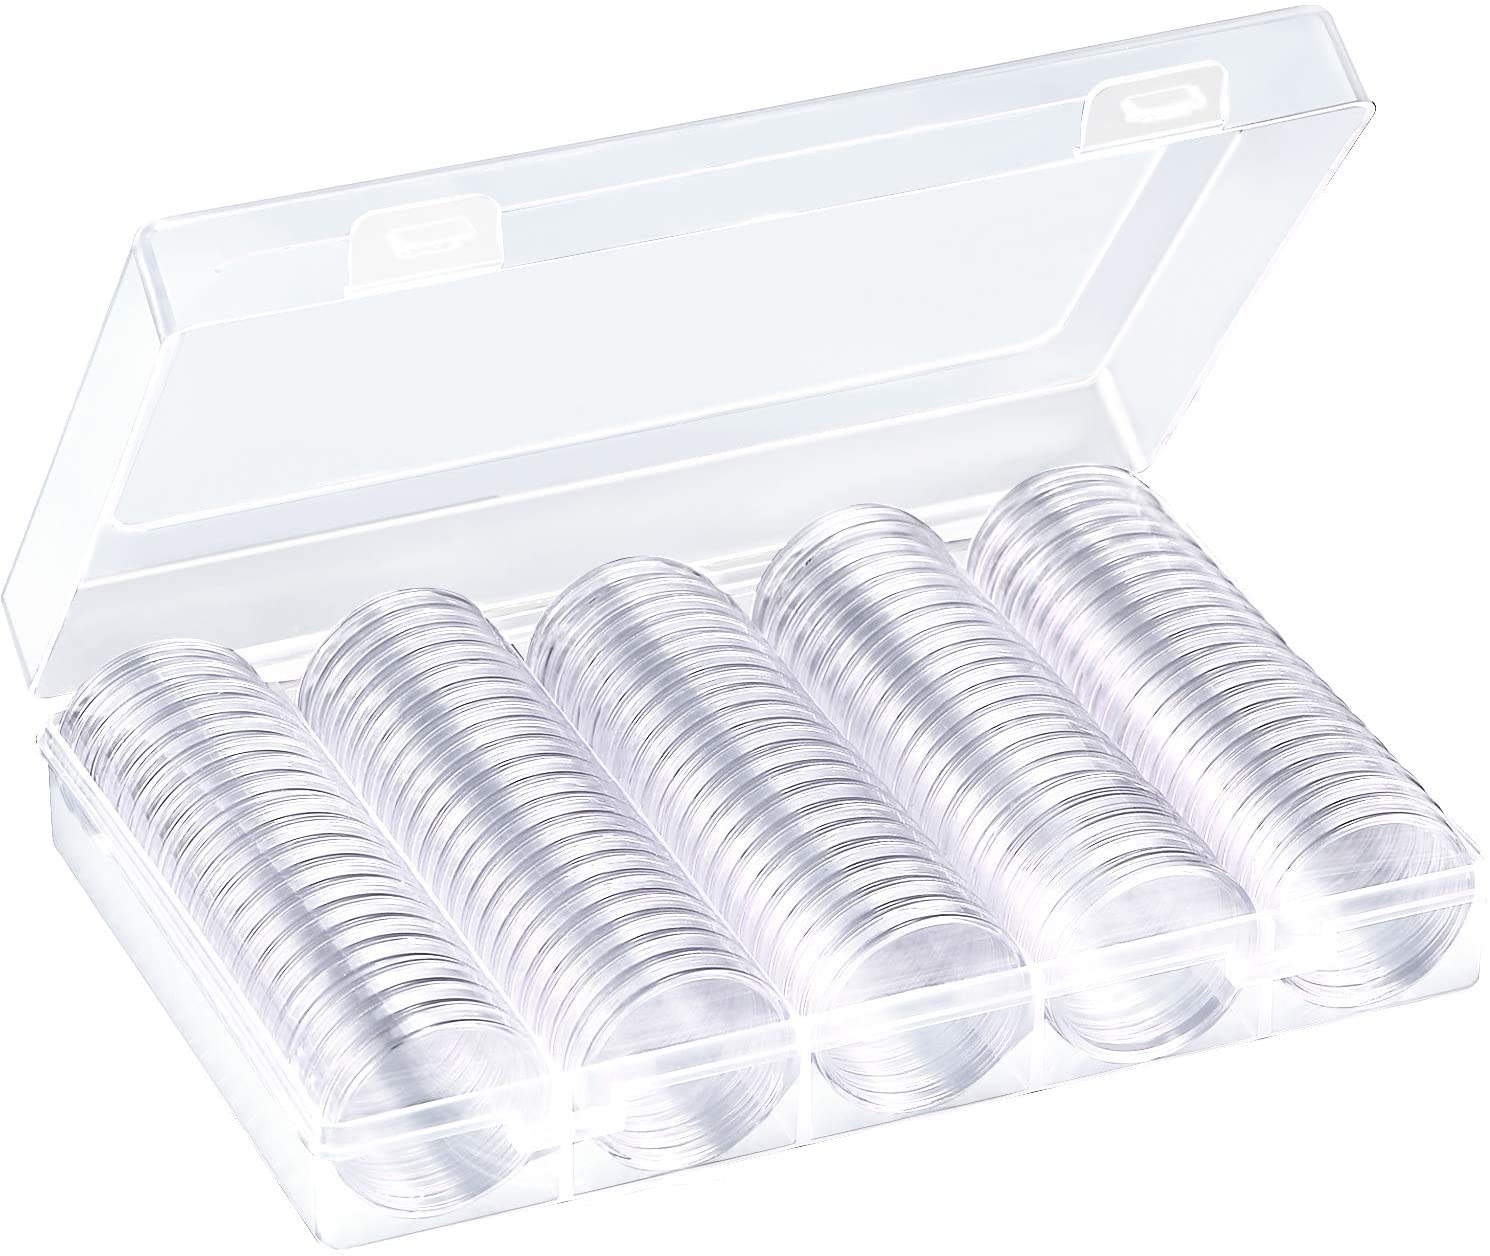 OKIl Small Round Box One Clear Ten Commemorative Coin Coin Collection Box Coin Holder